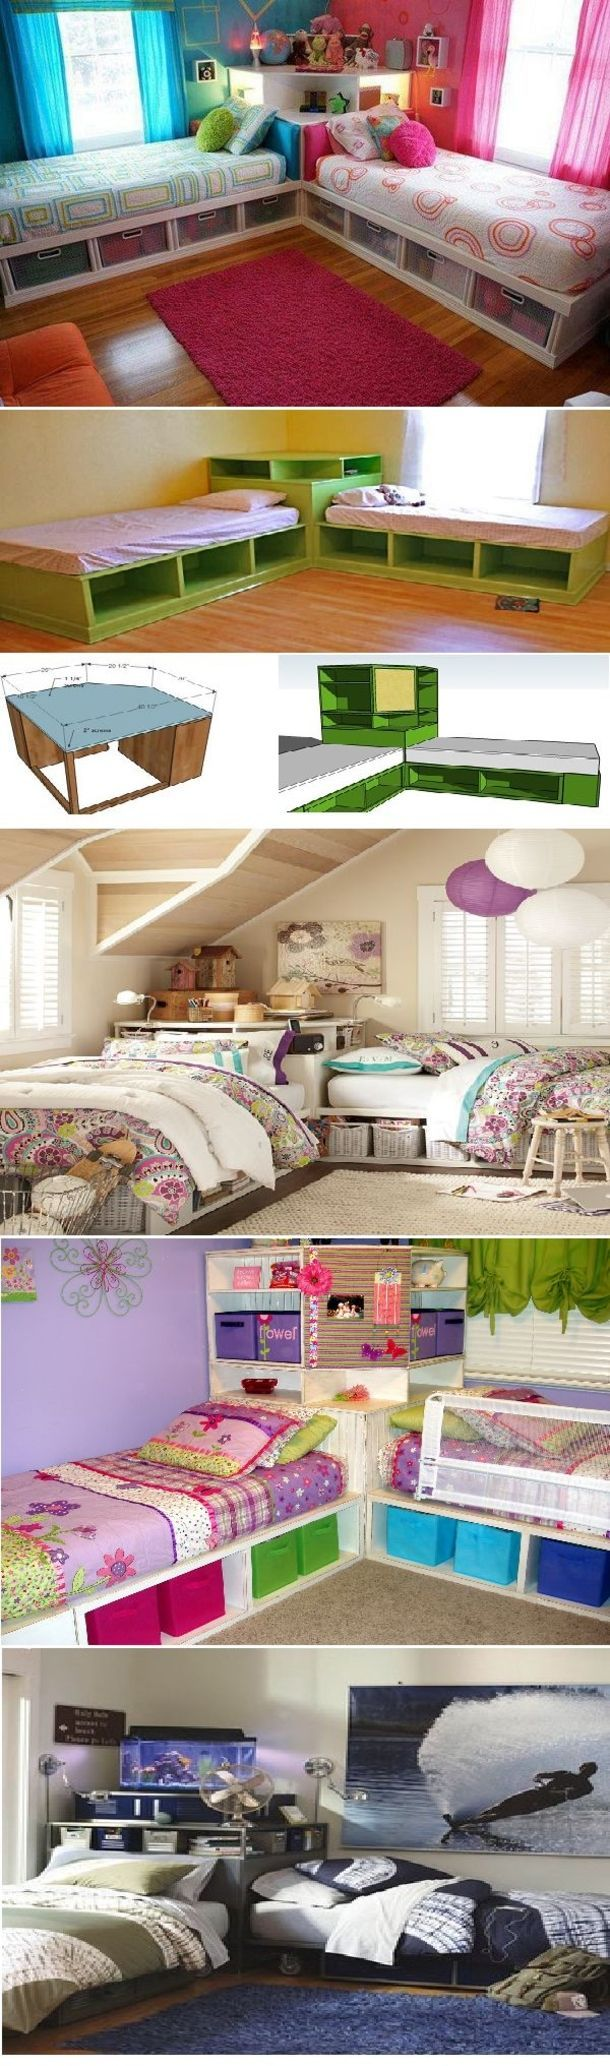 Cool Bedroom Ideas For Teenage, Kids, and Twin - Best Shared Bedroom Ideas For Boys And Girls